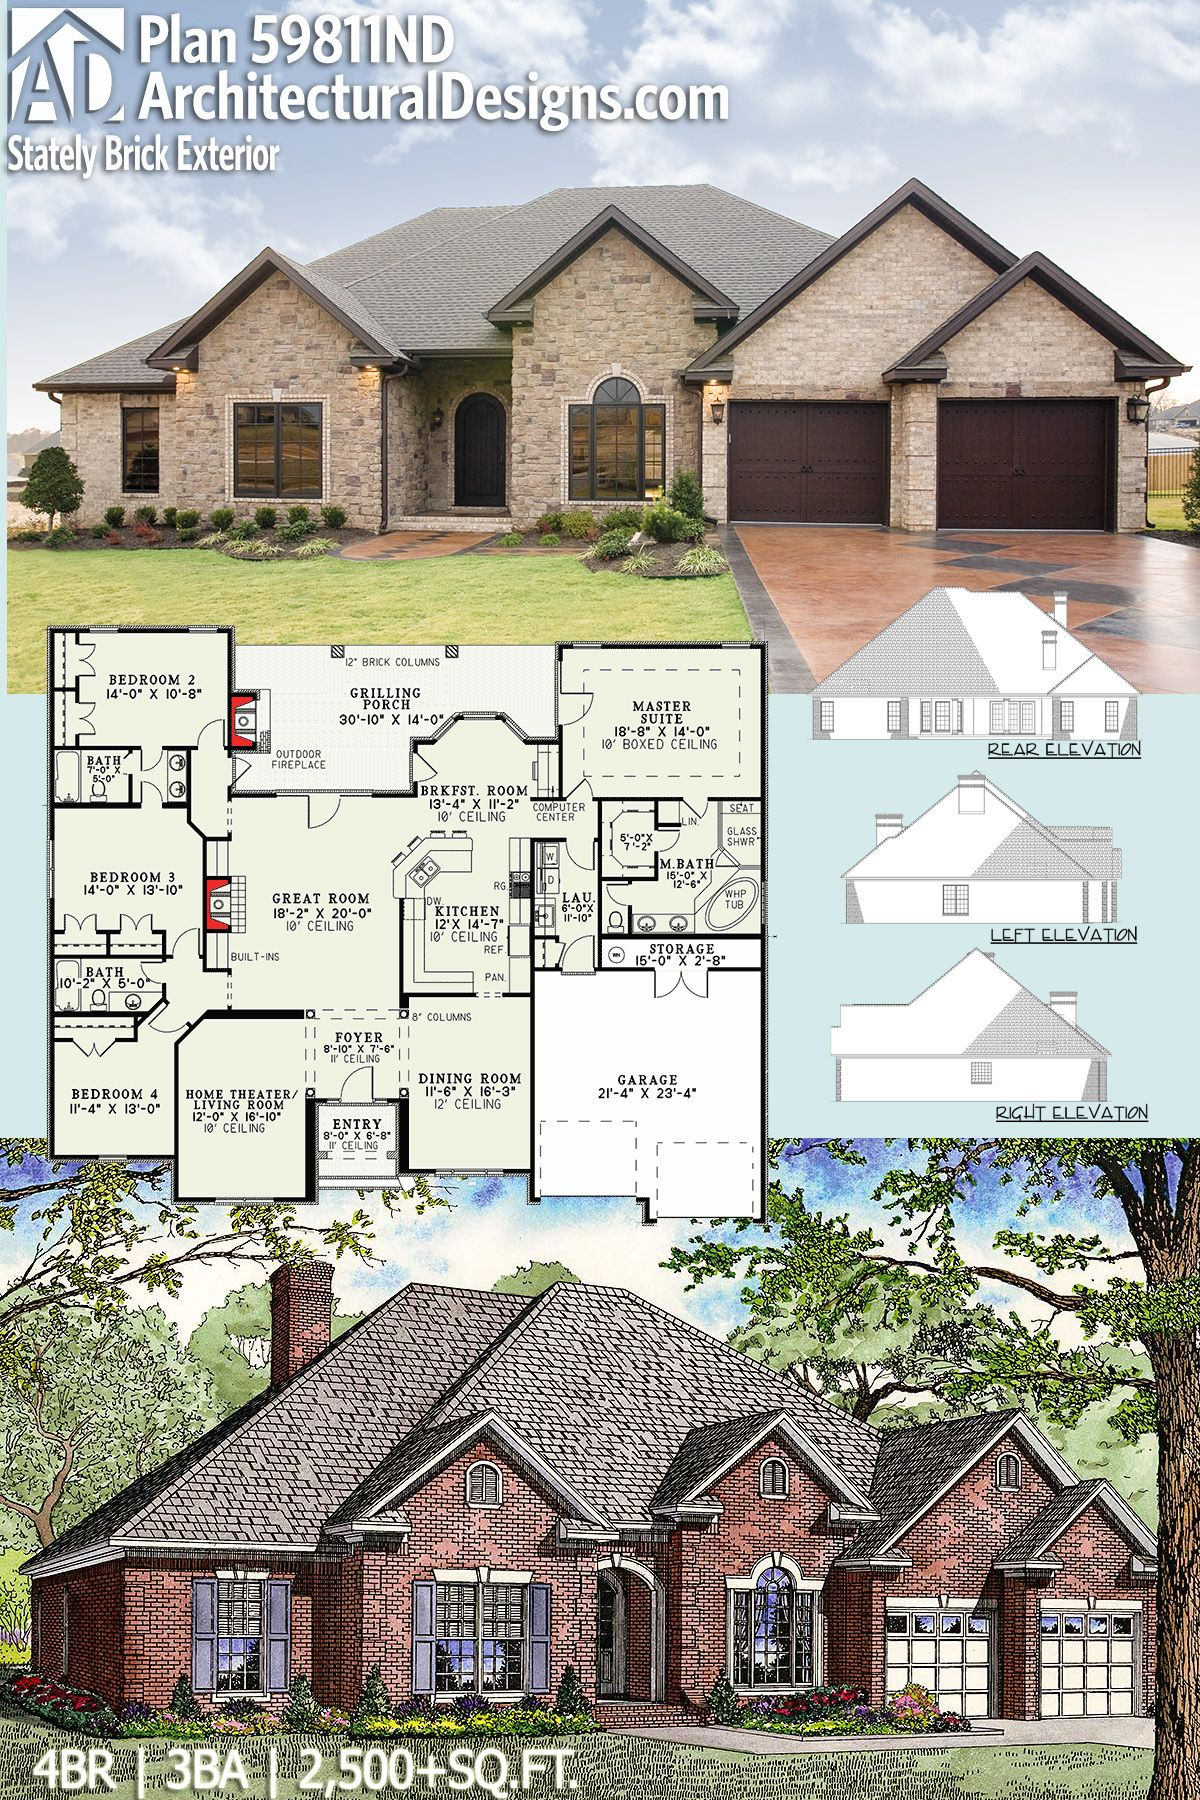 Architectural designs house plan nd gives you beds baths and has  classy brick exterior over sq ft ready when are also rh pinterest